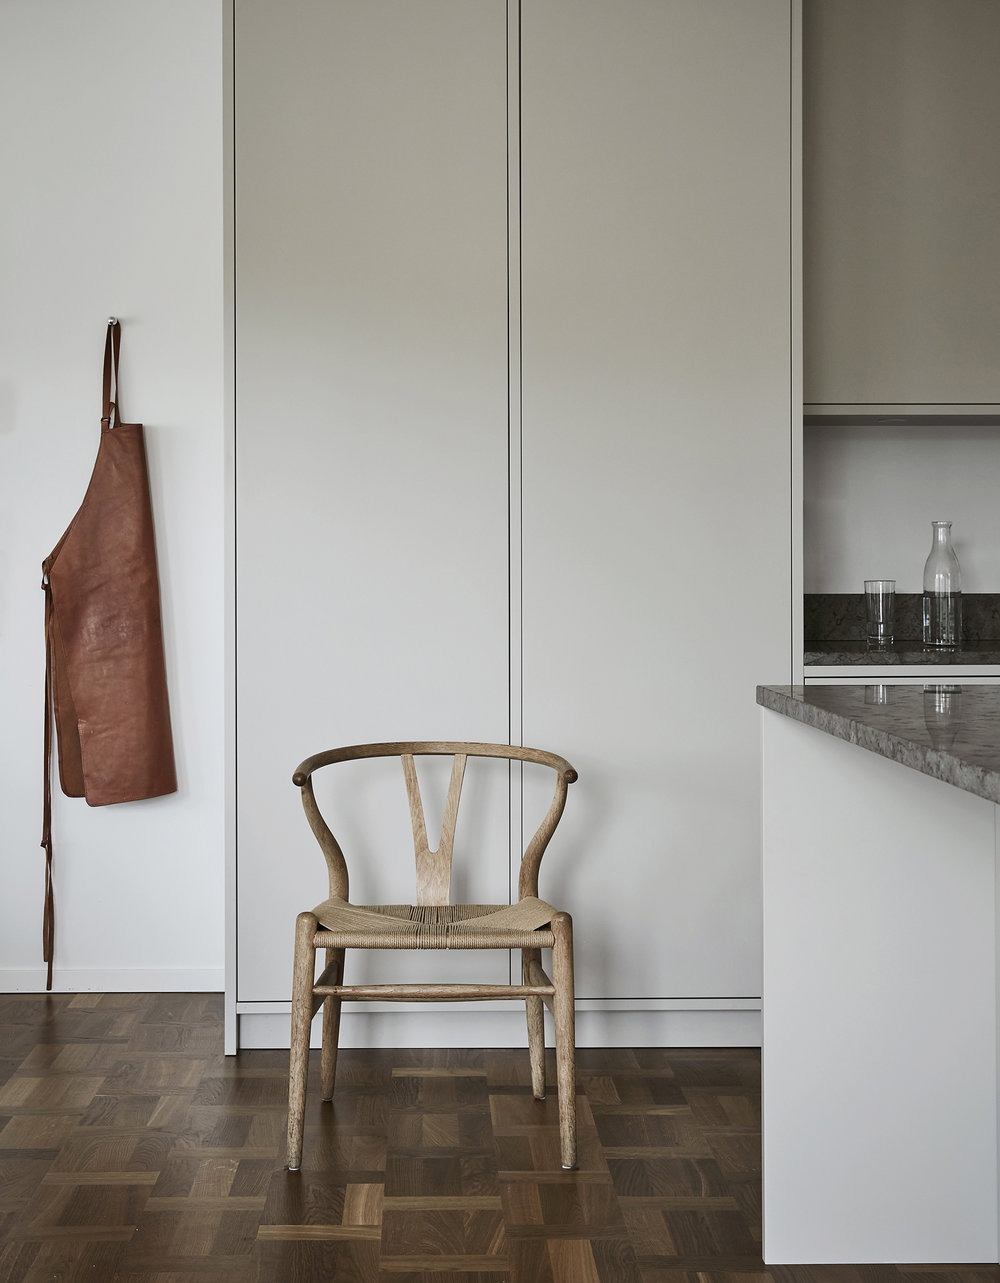 apron and chair in a minimalistic kitchen by Sundlingkicken for Nordiska Kök